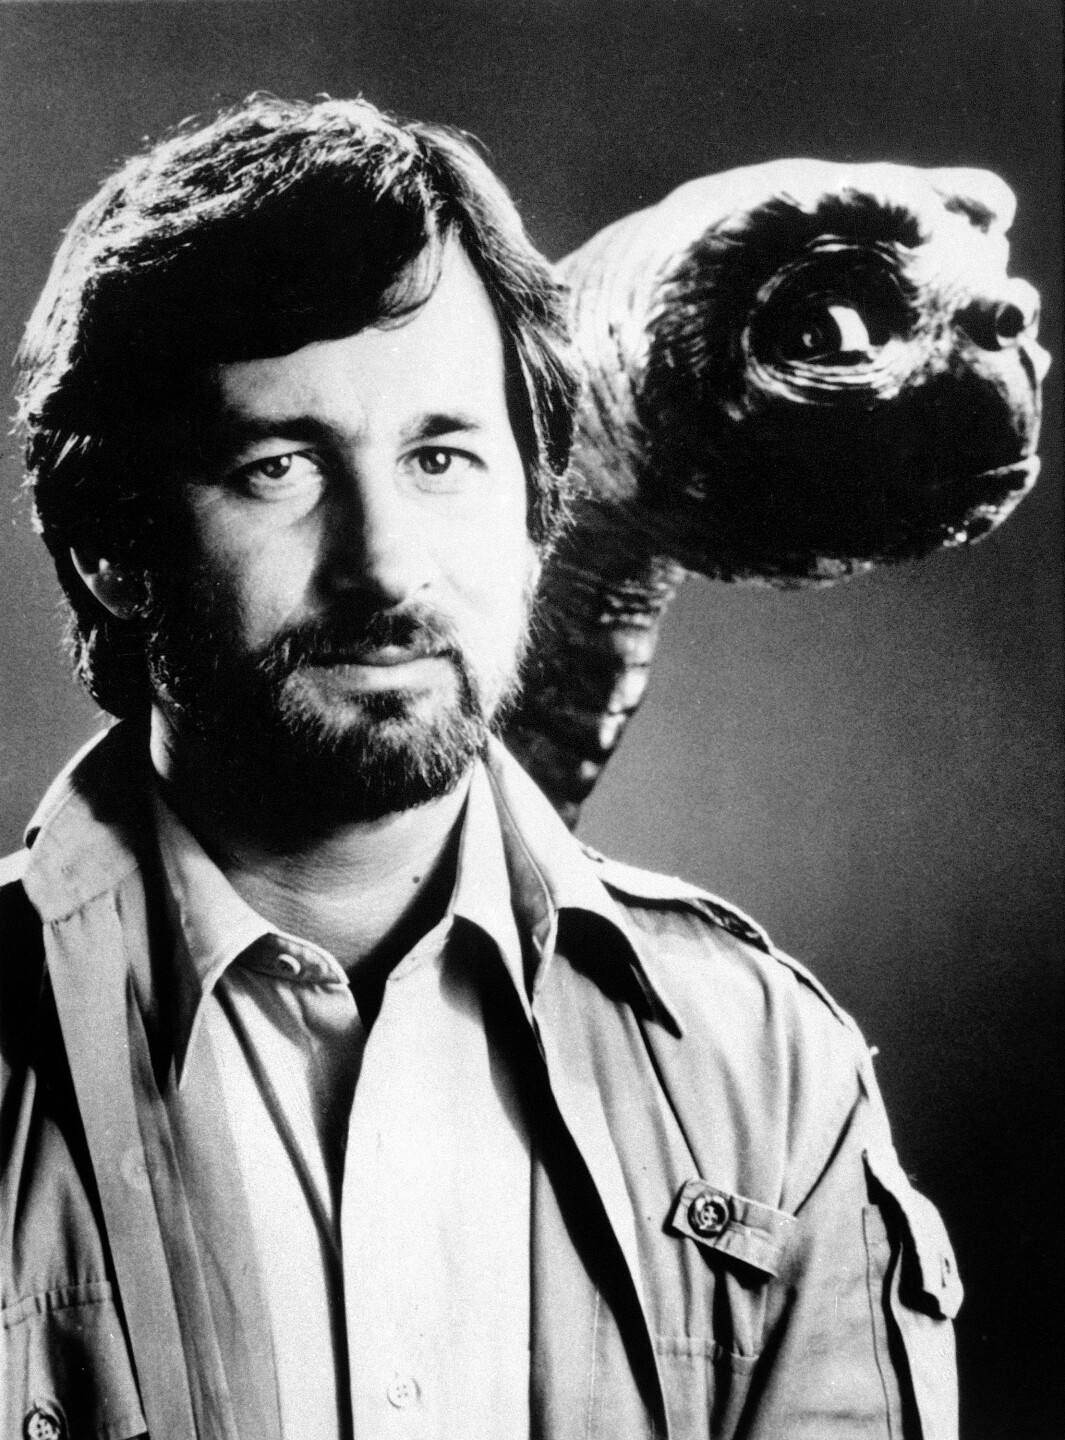 Steven Spielberg poses with E.T. in 1982